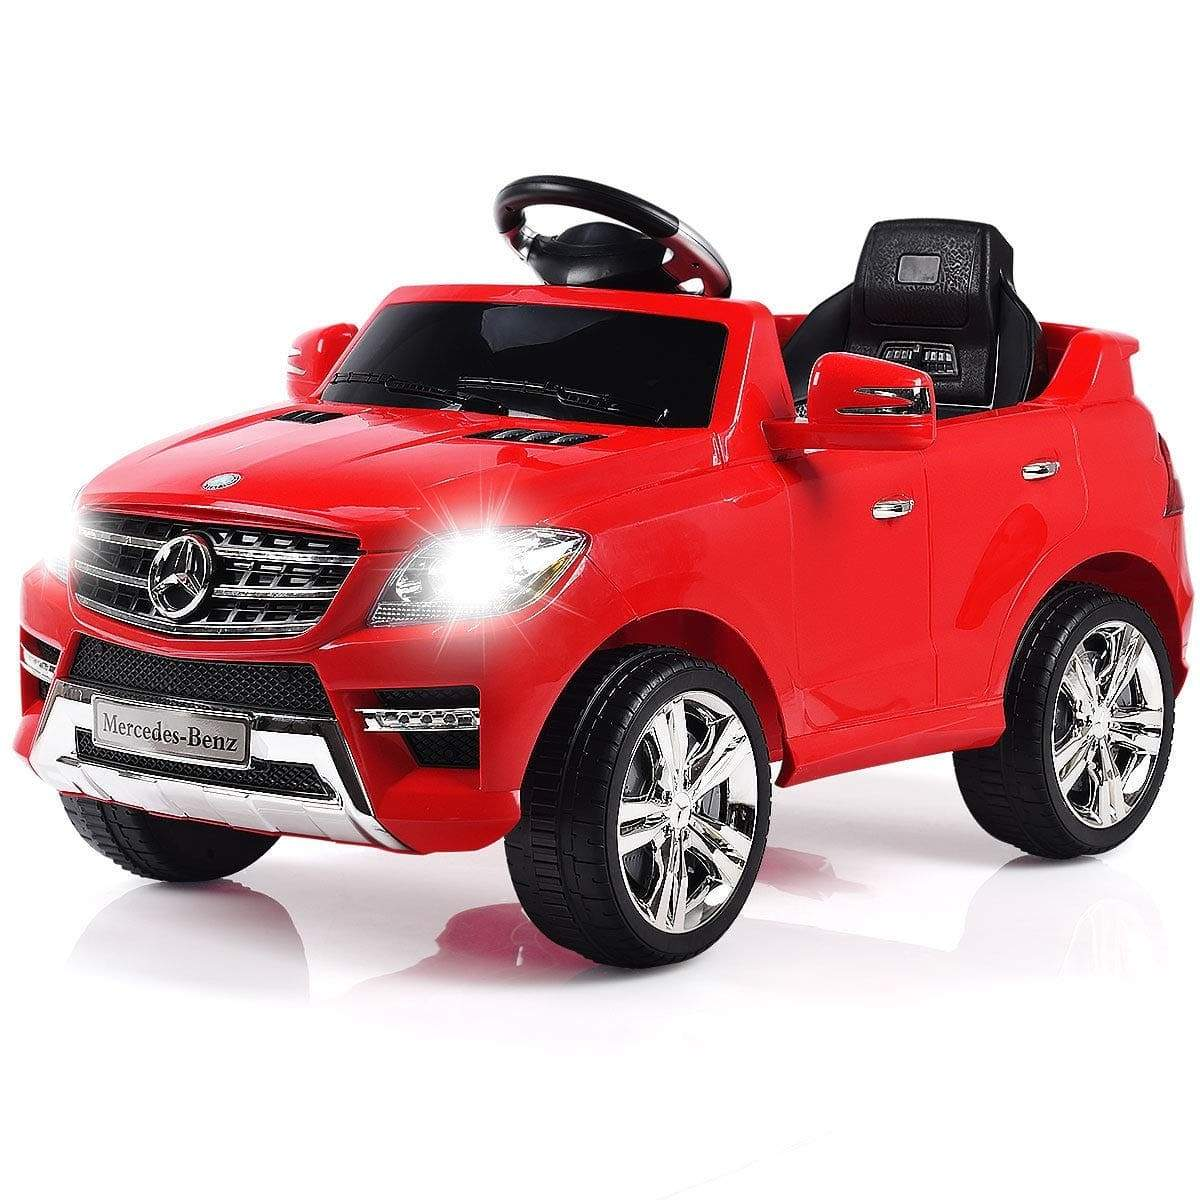 Mercedes Benz ML350 Licensed 6V Kids Ride on Car with Remote Control - FREE SHIPPING Cars & SUVs Costway Red